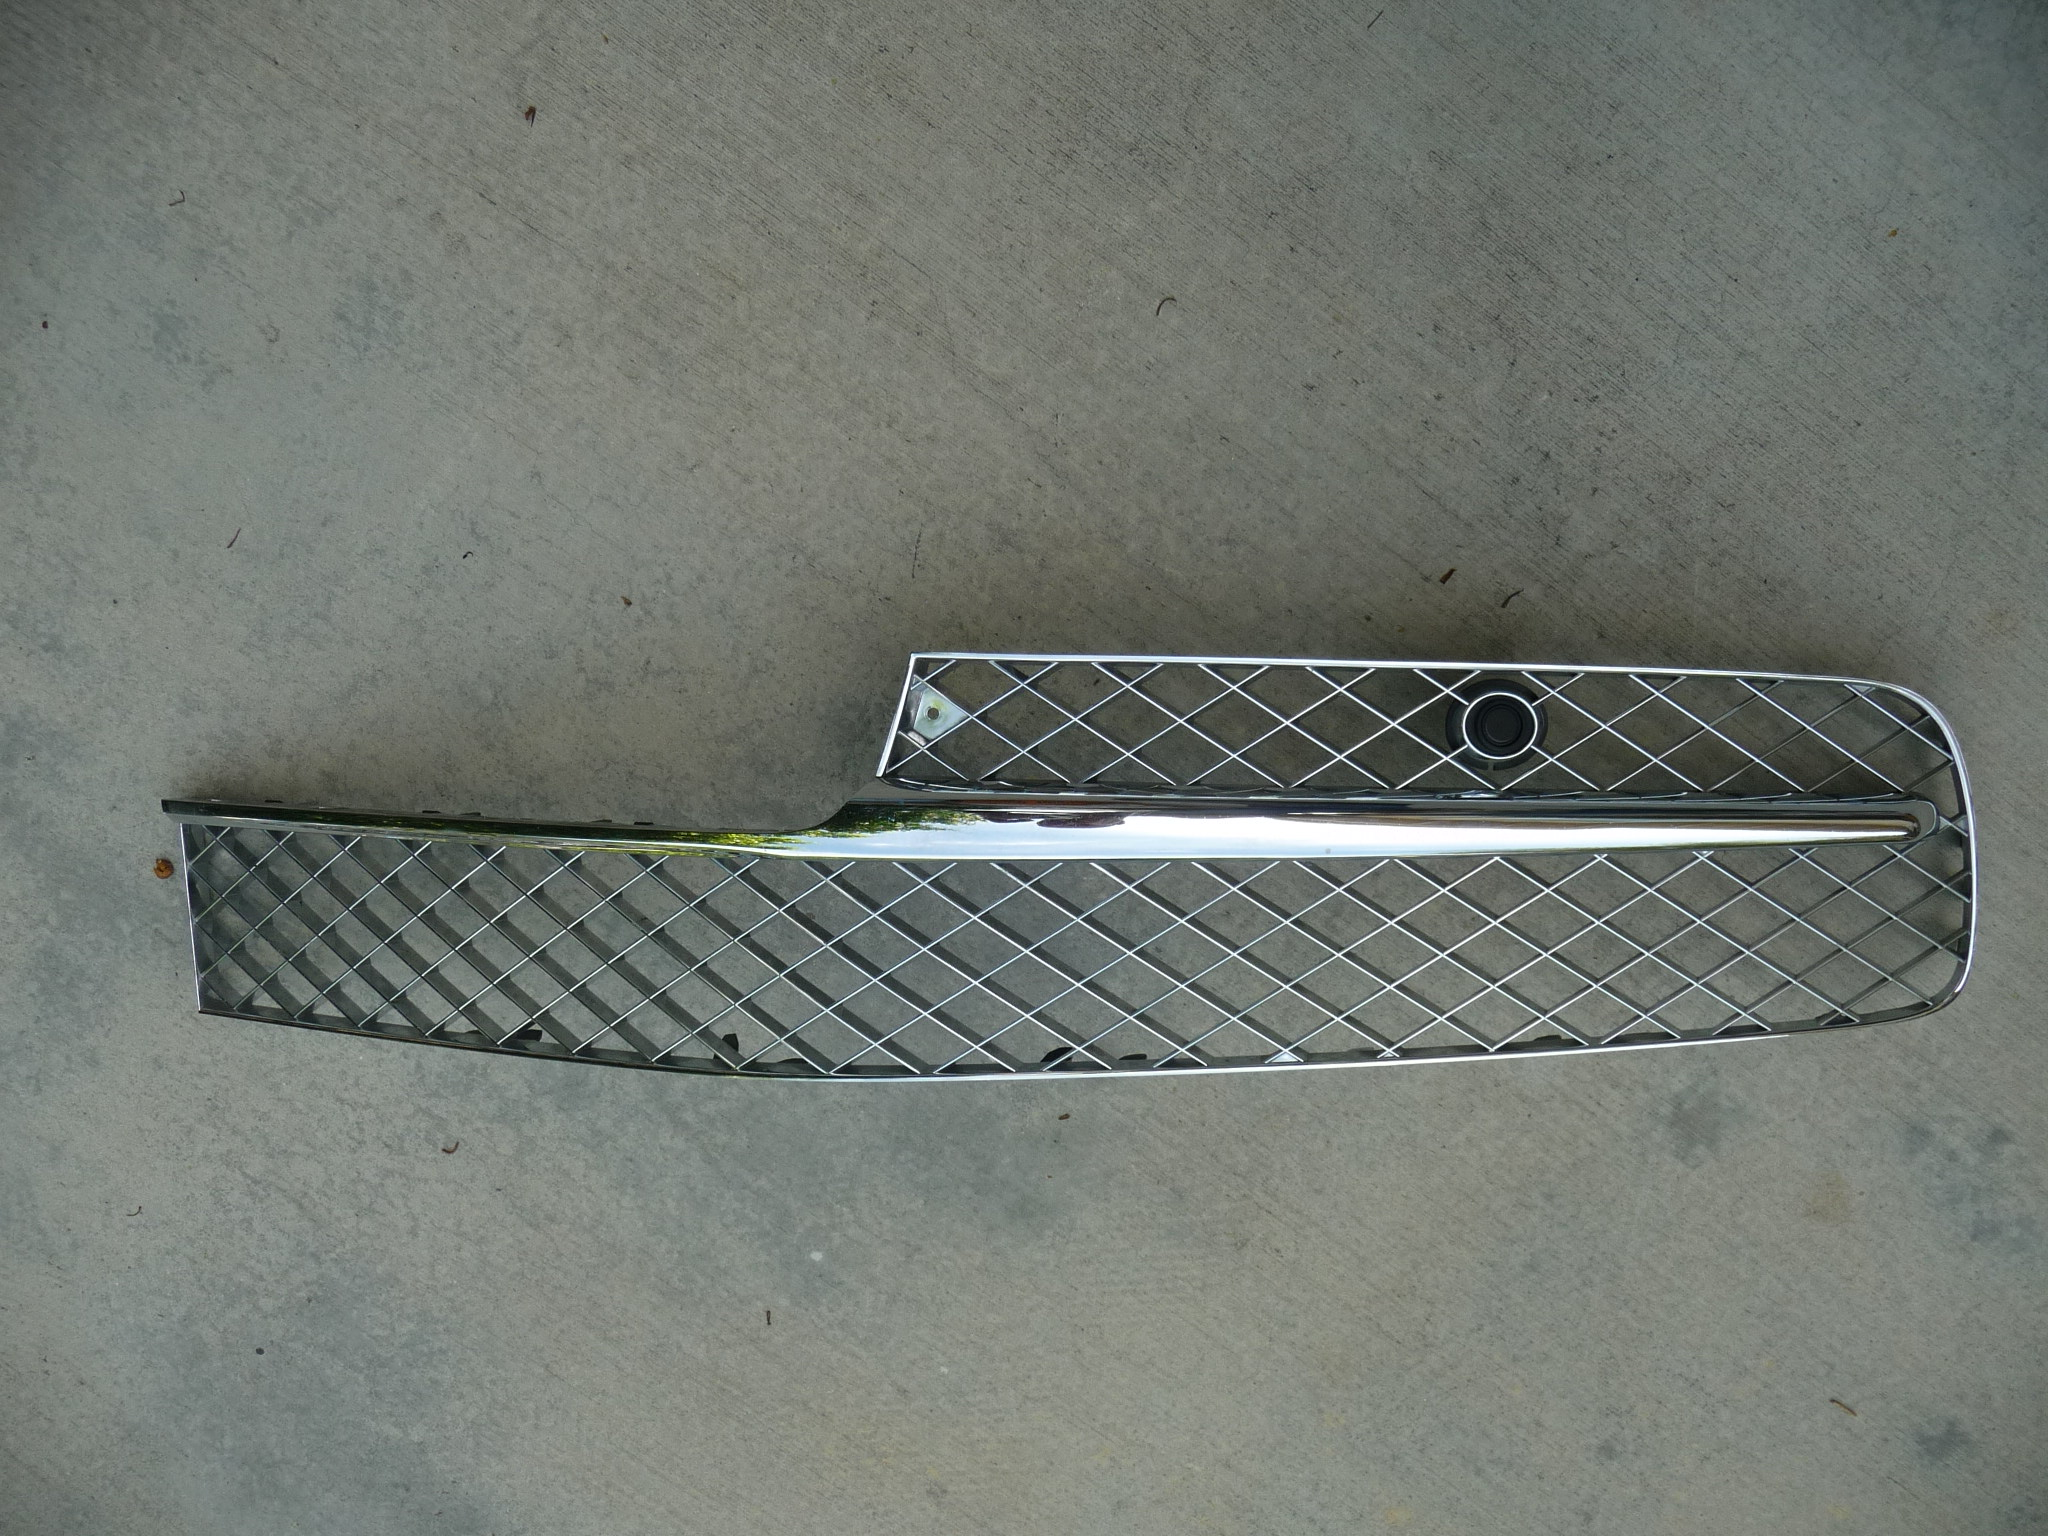 2013 2014 2015 2016  Bentley Flying Spur Sedan 4 Door Front Grille Grill Chrome Left - Used Auto Parts Store | LA Global Parts